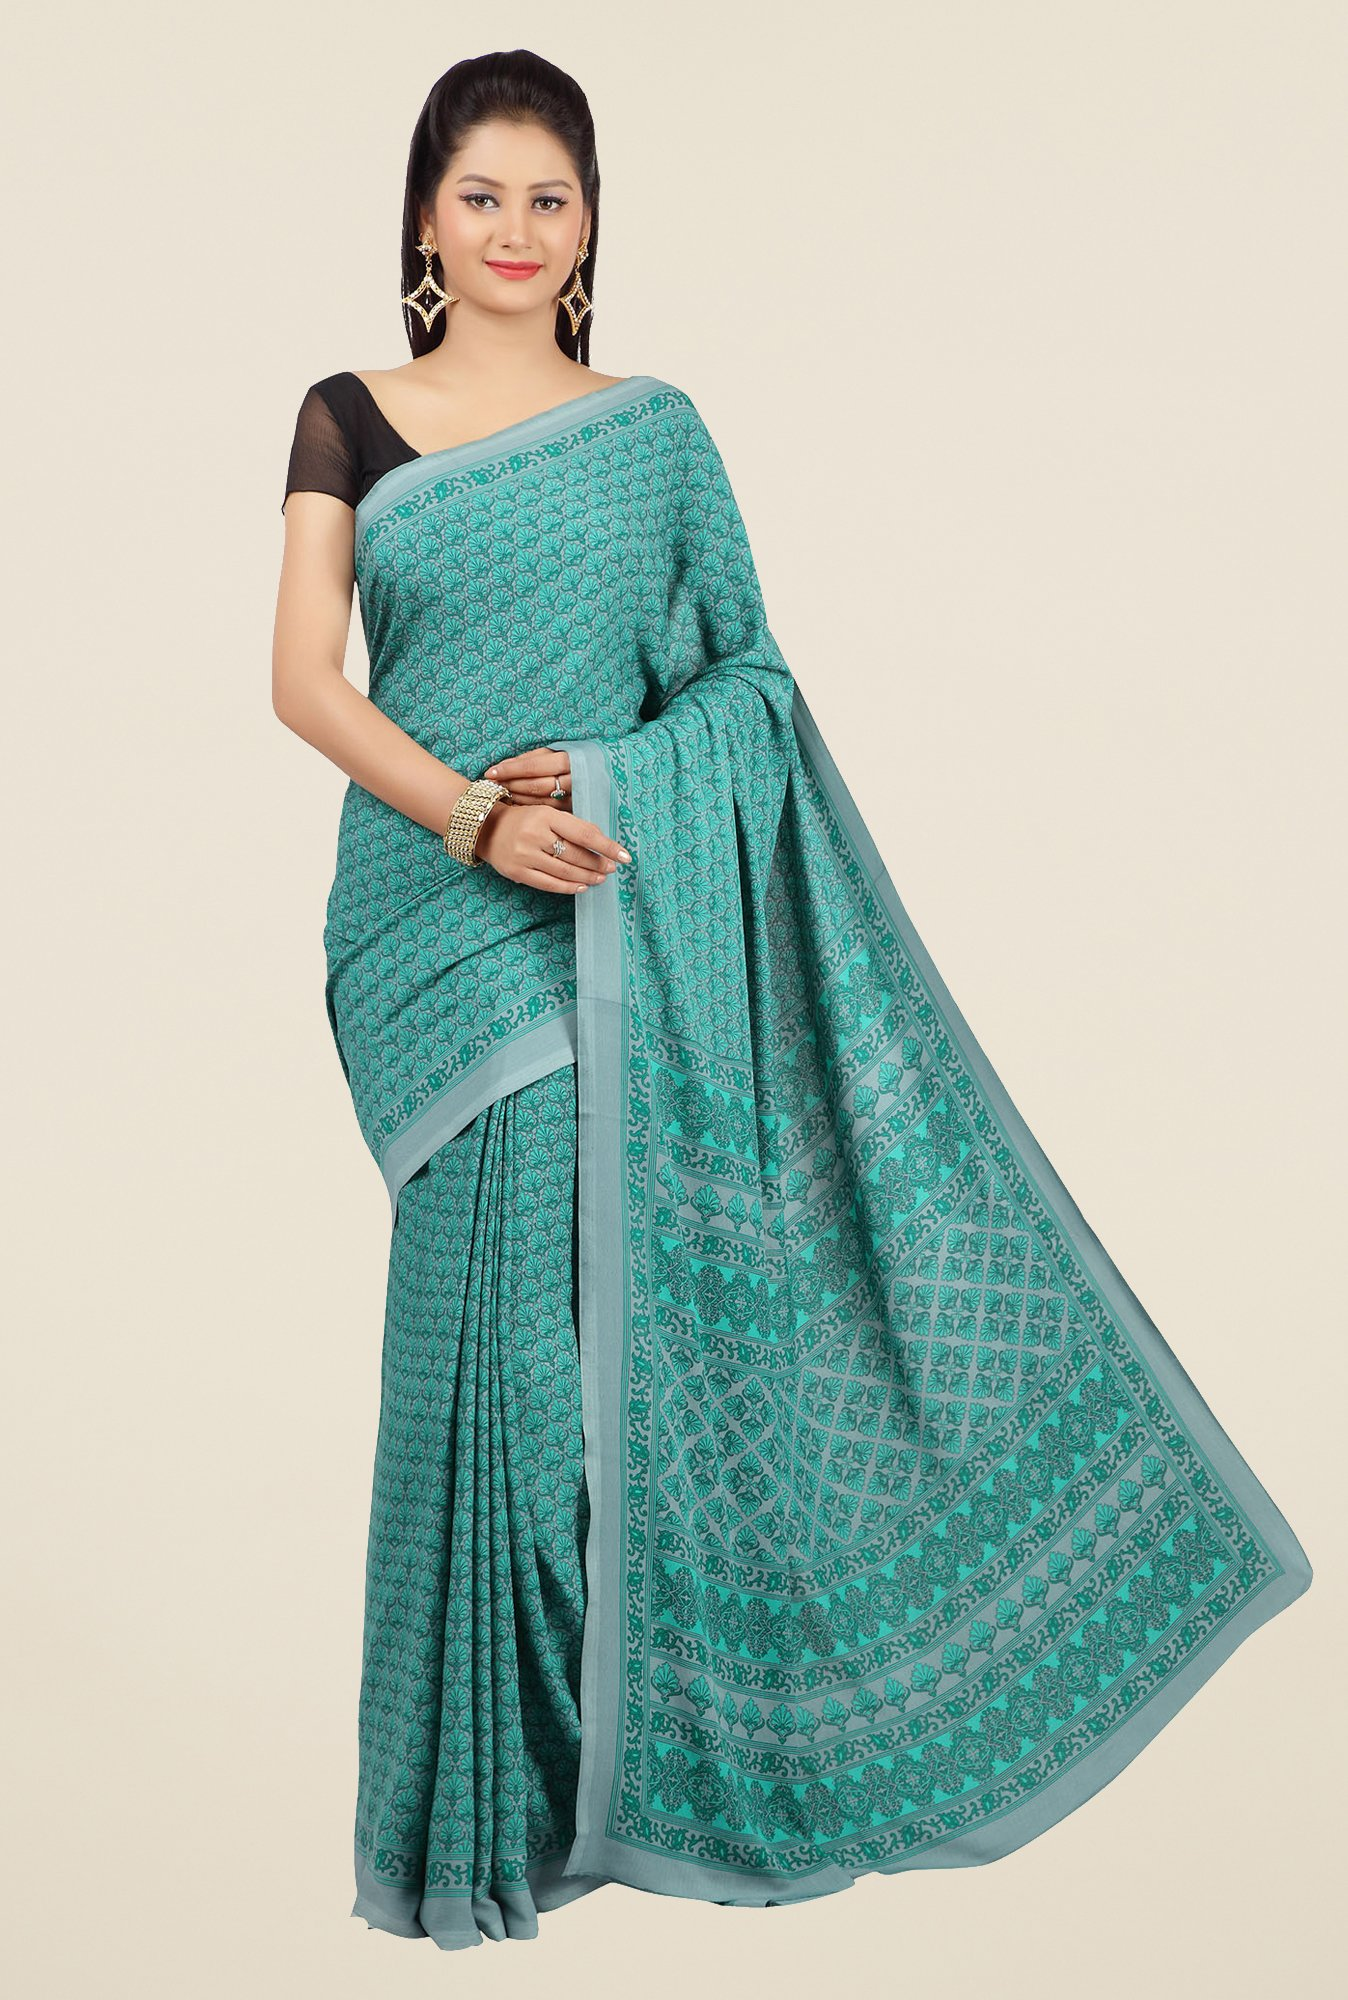 Jashn Teal Printed Saree